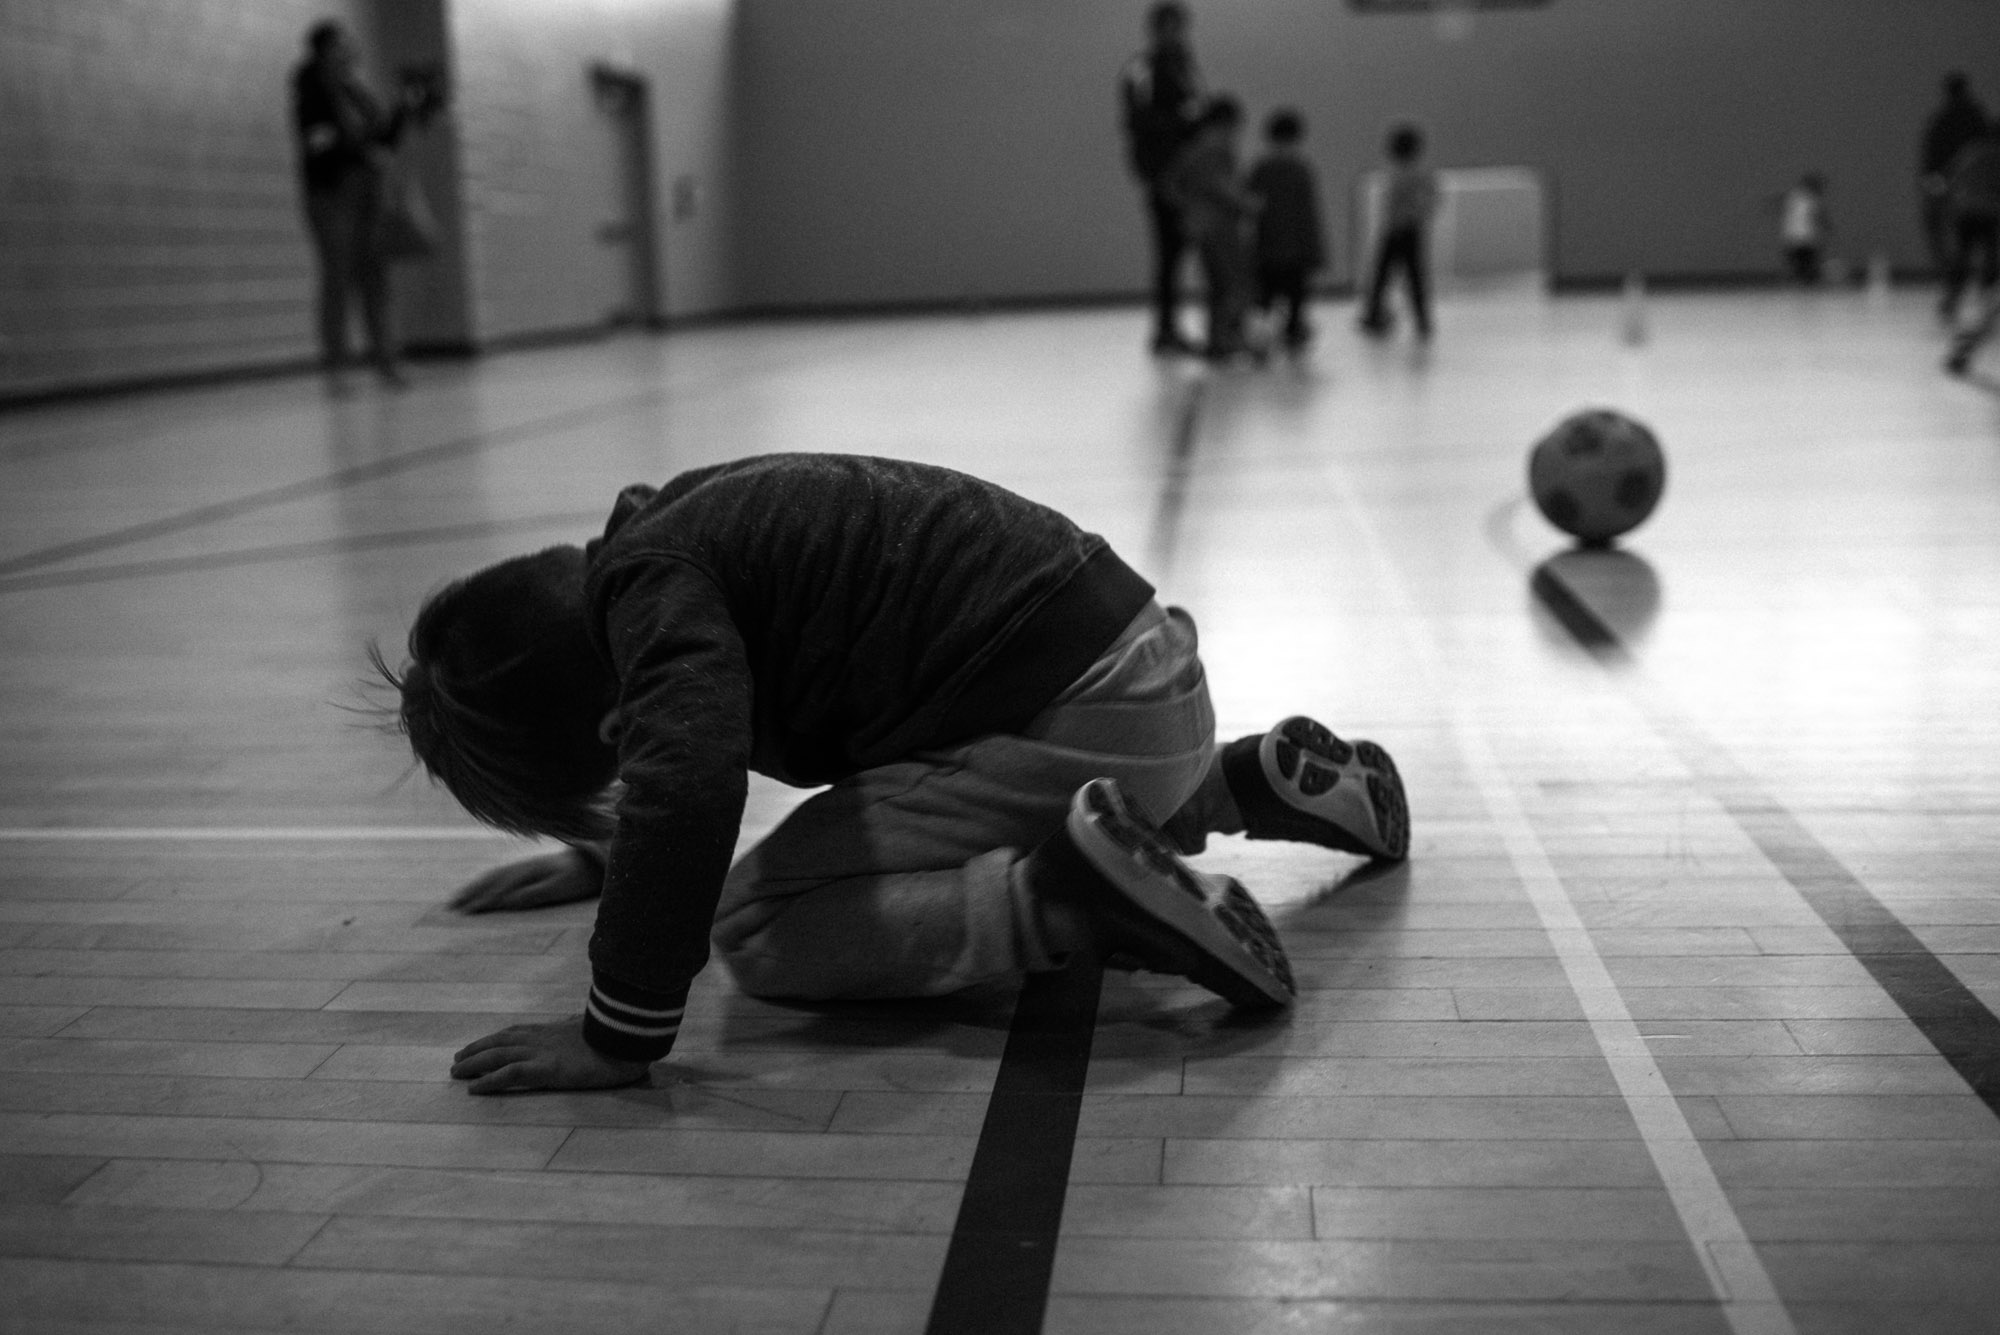 boy reclines on the floor at soccer practice